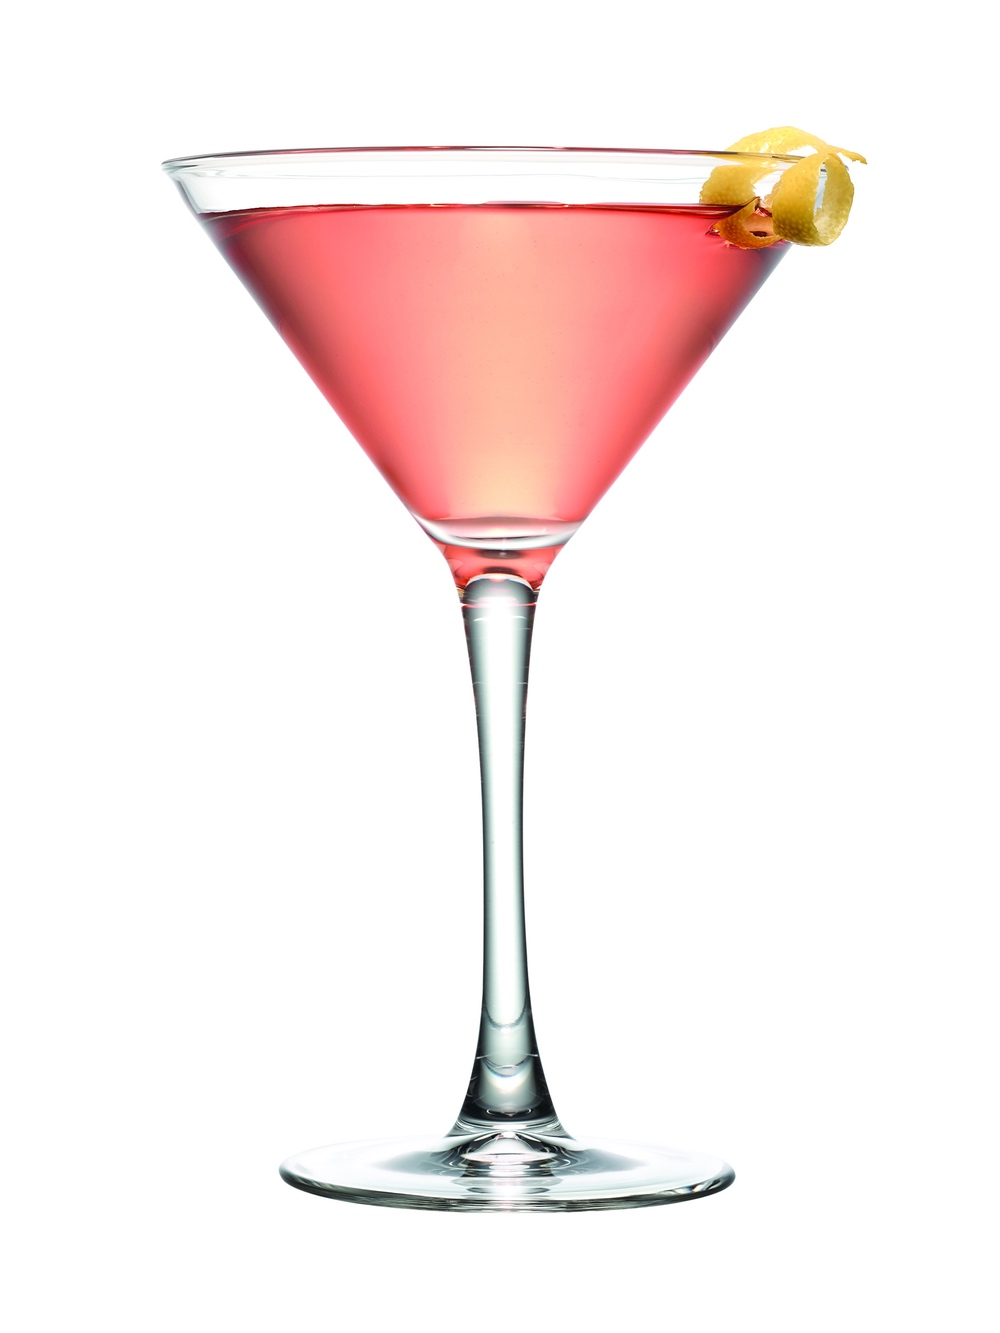 Rose martini by Cyrano Armagnac